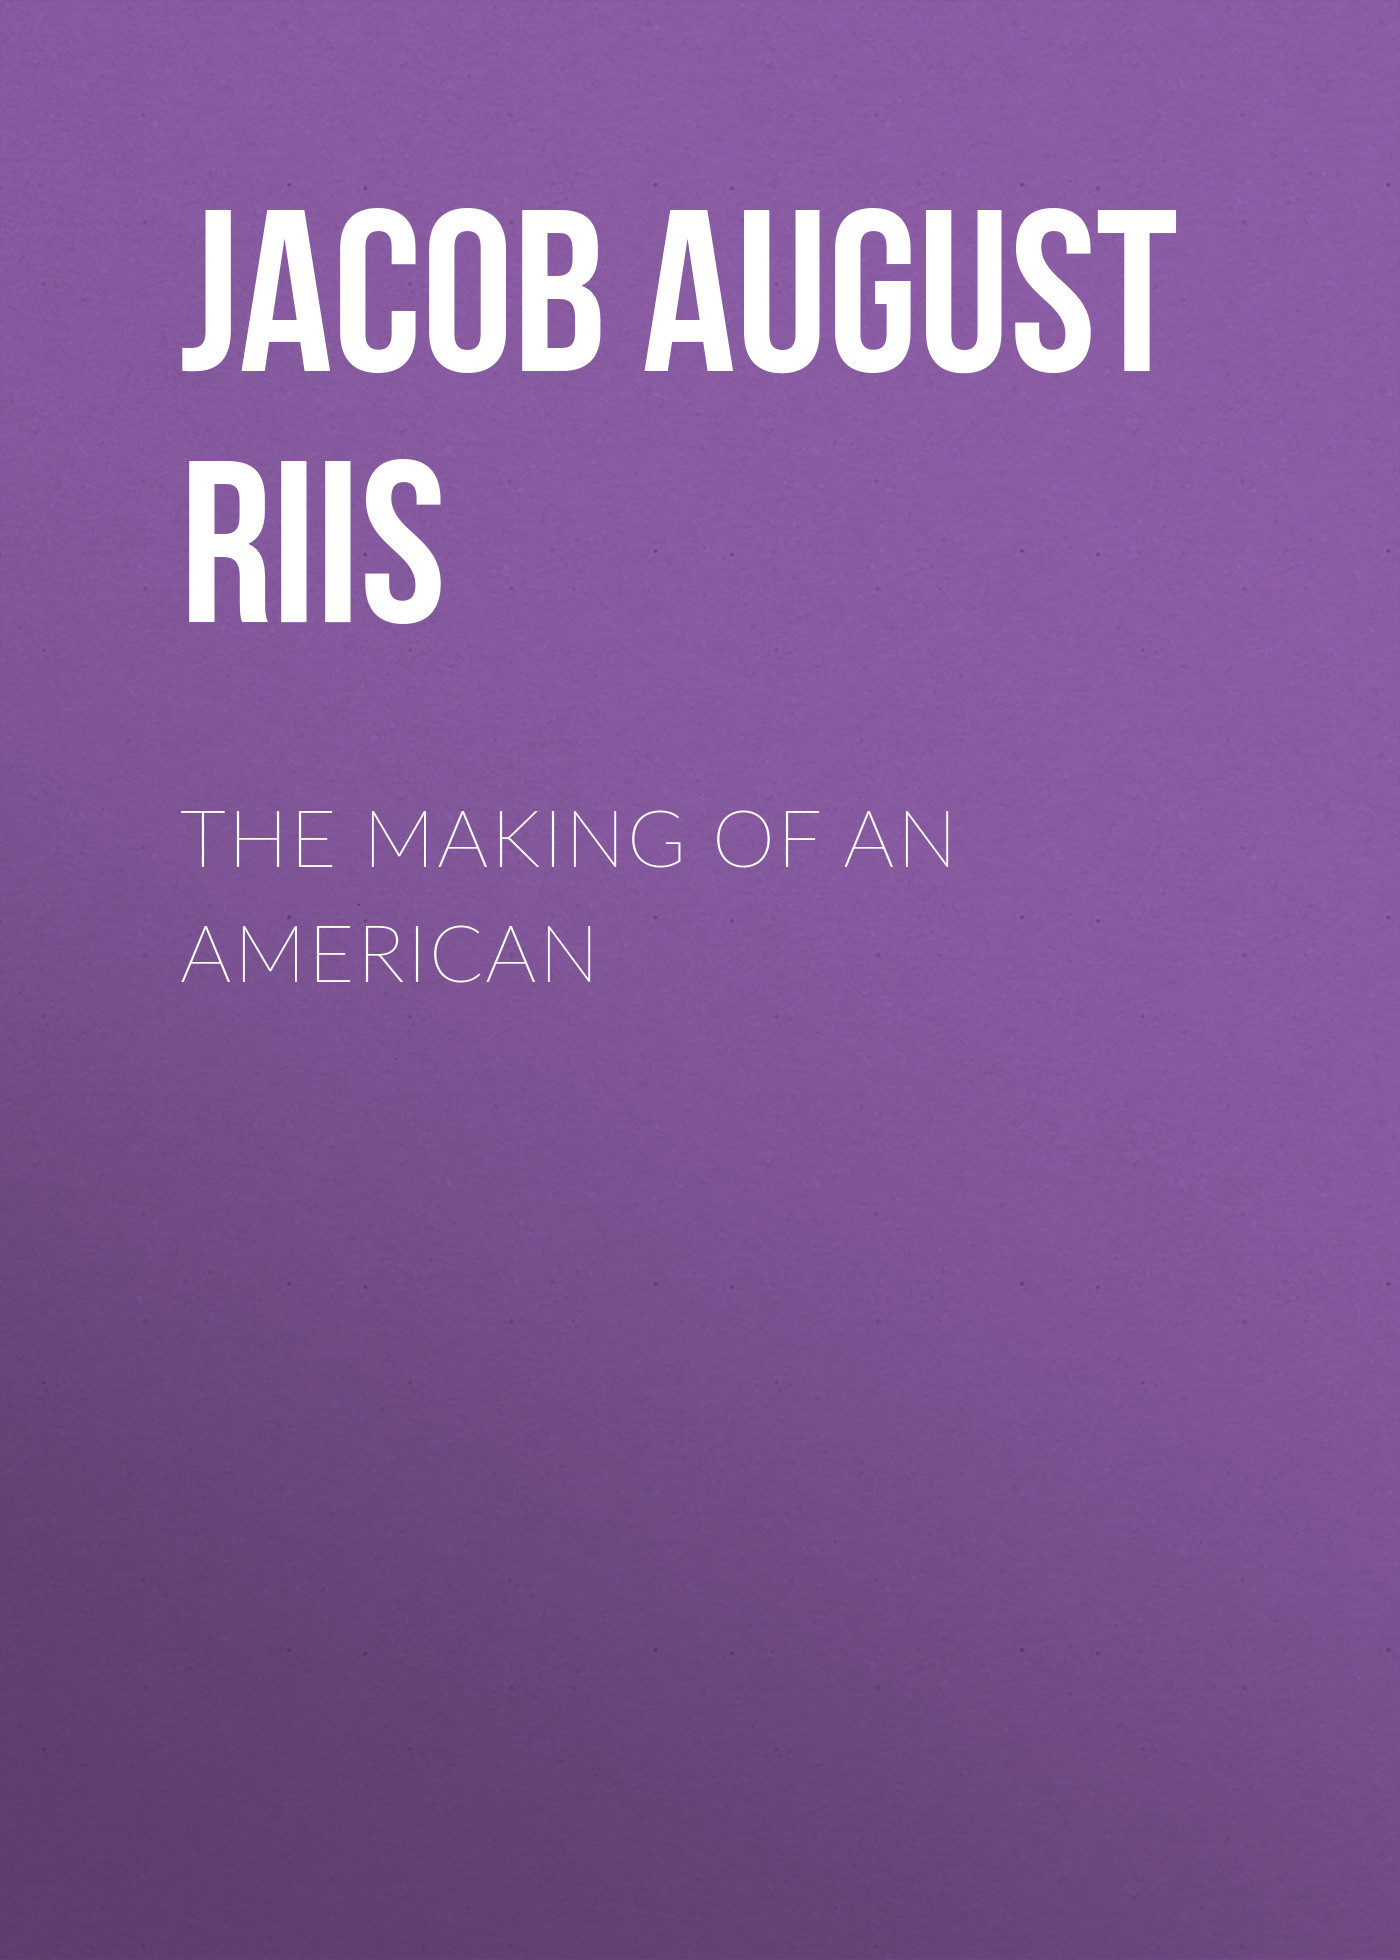 Jacob August Riis The Making of an American the outside of august